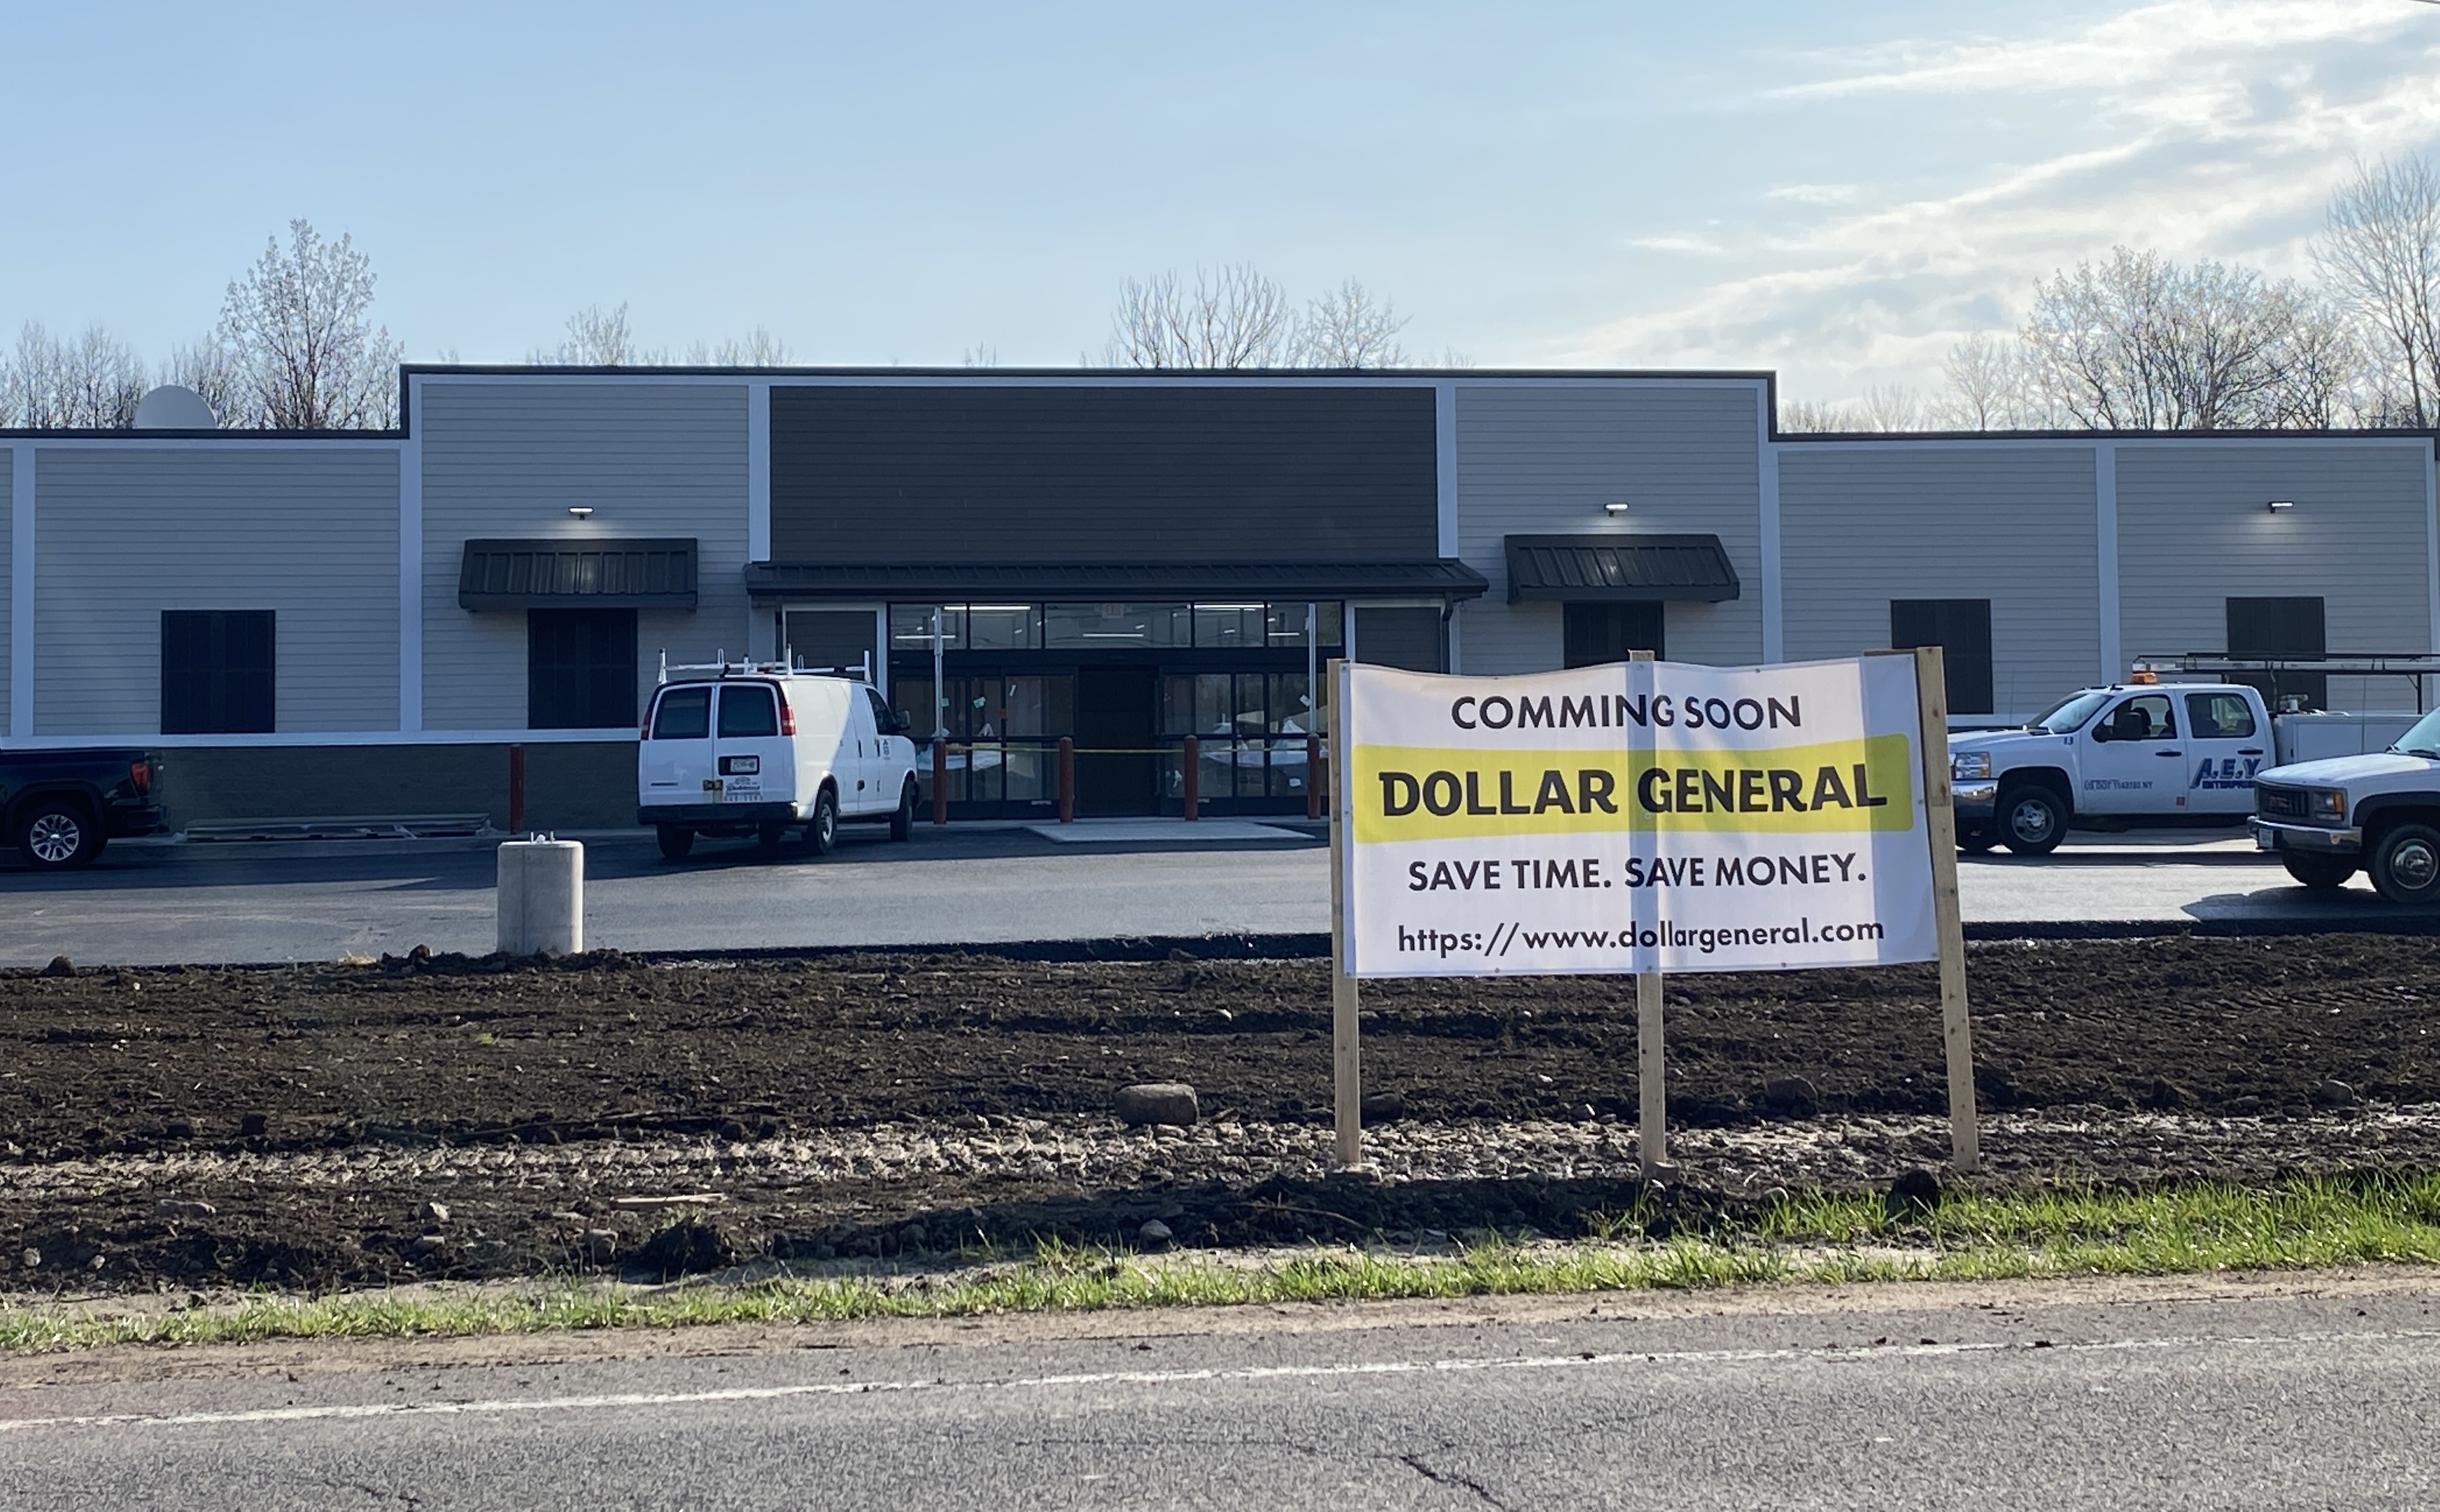 Dollar General will open soon in Rose: Officials excited about opportunity for residents